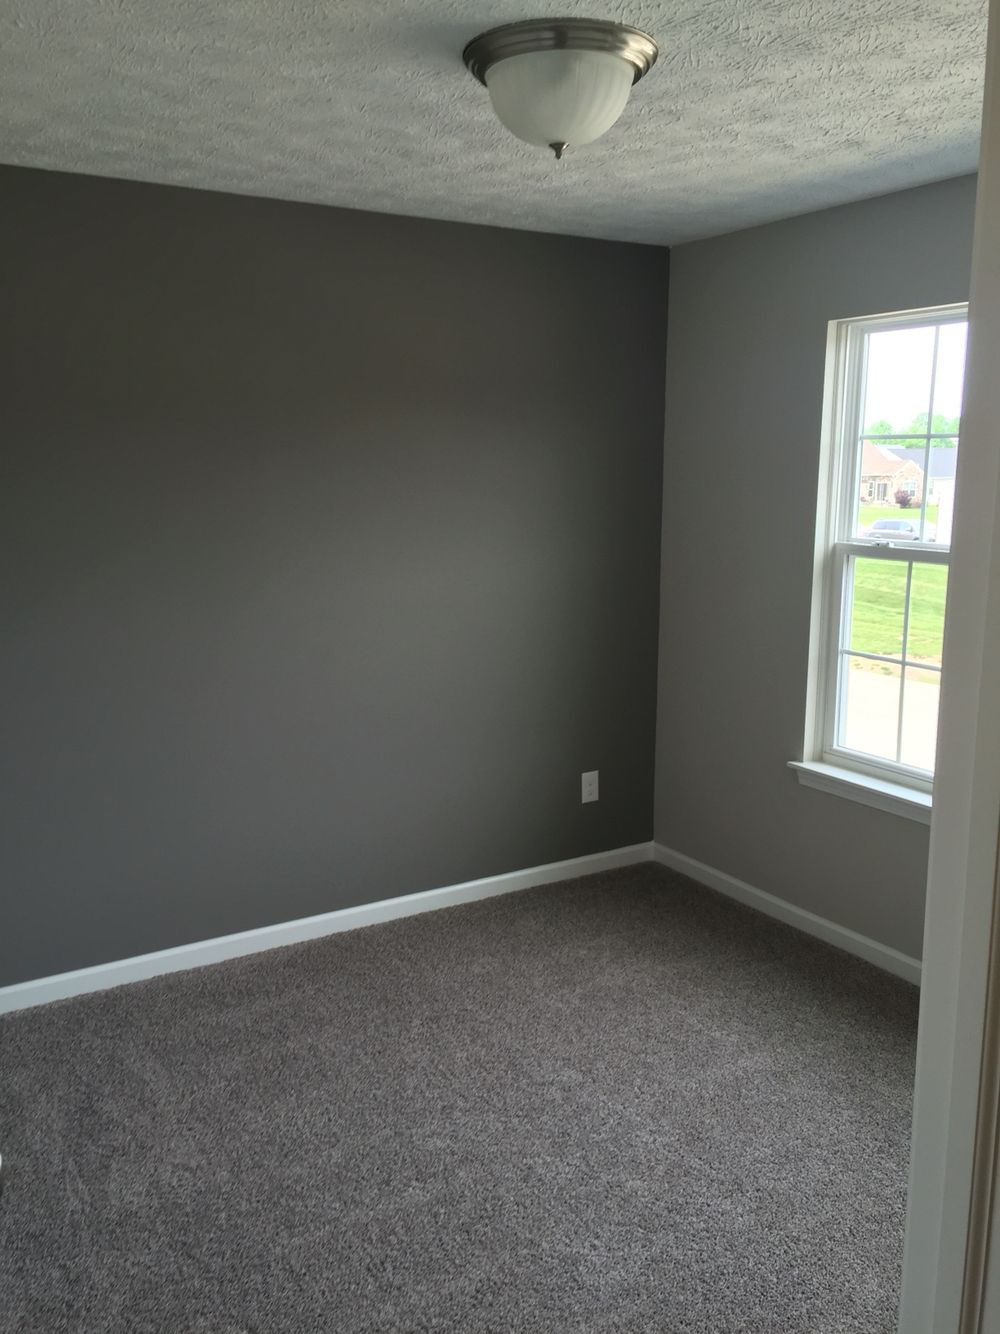 Our carpet is mohawk brand in rainswept gray the dark gray accent wall is done